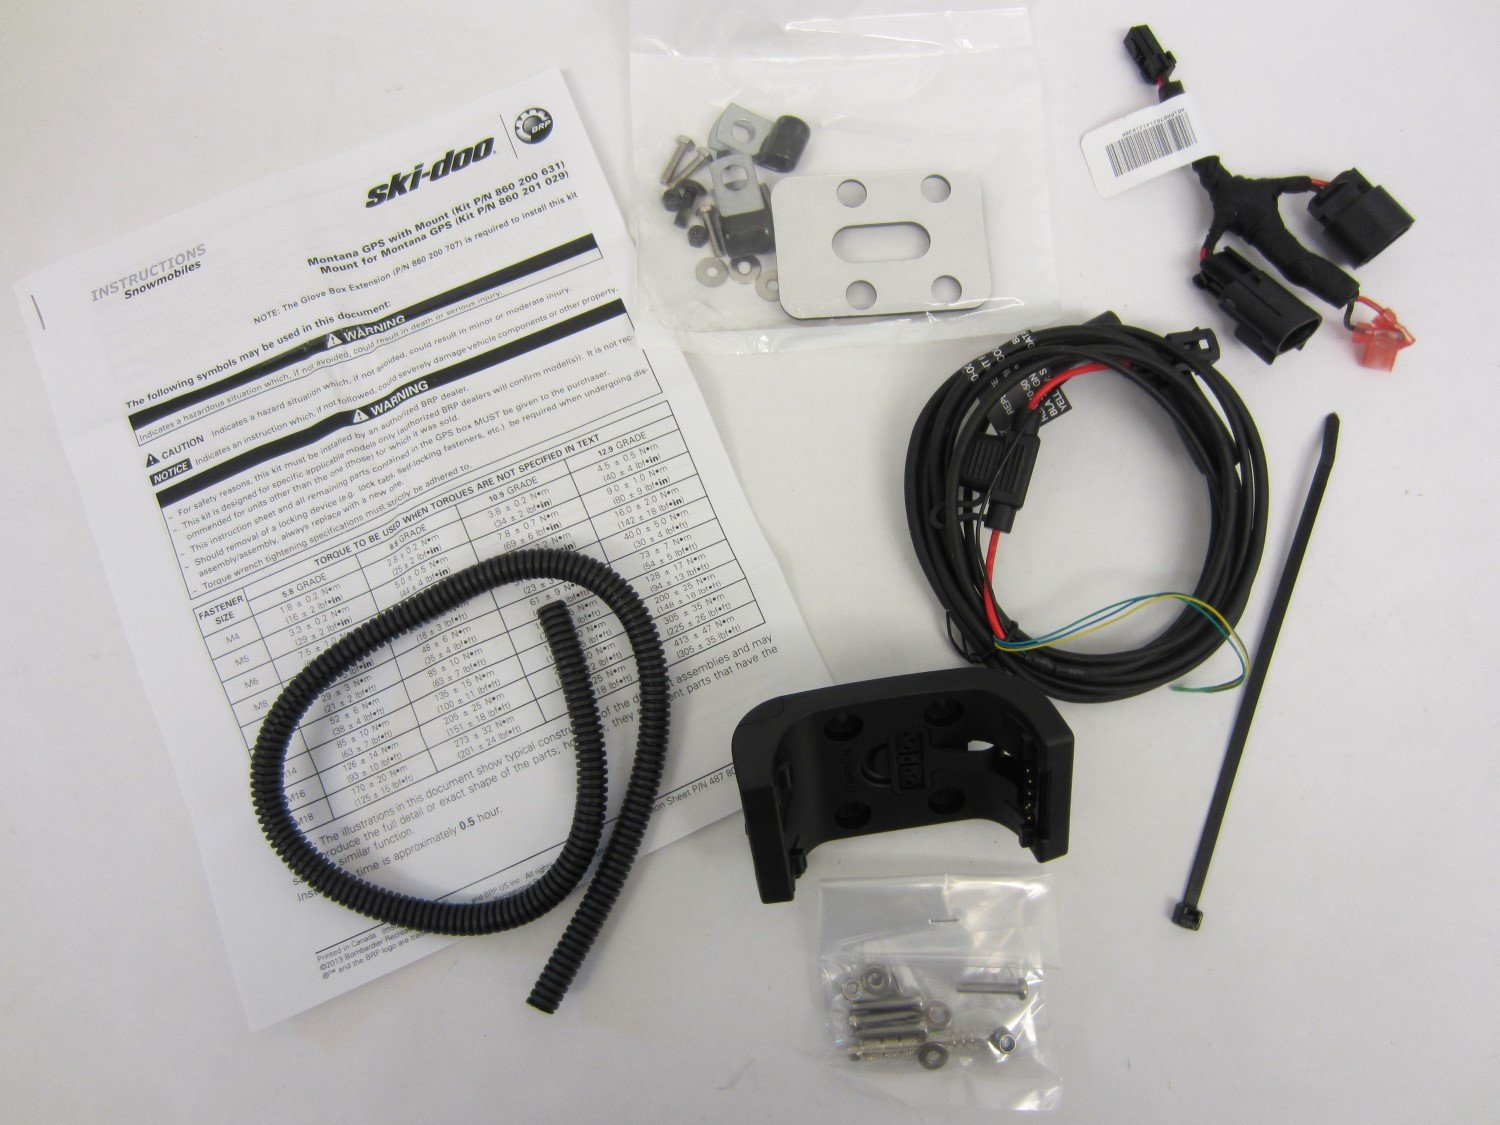 Ski-Doo New OEM Montana GPS Support Kit 860201029 Wire Harness & Mount